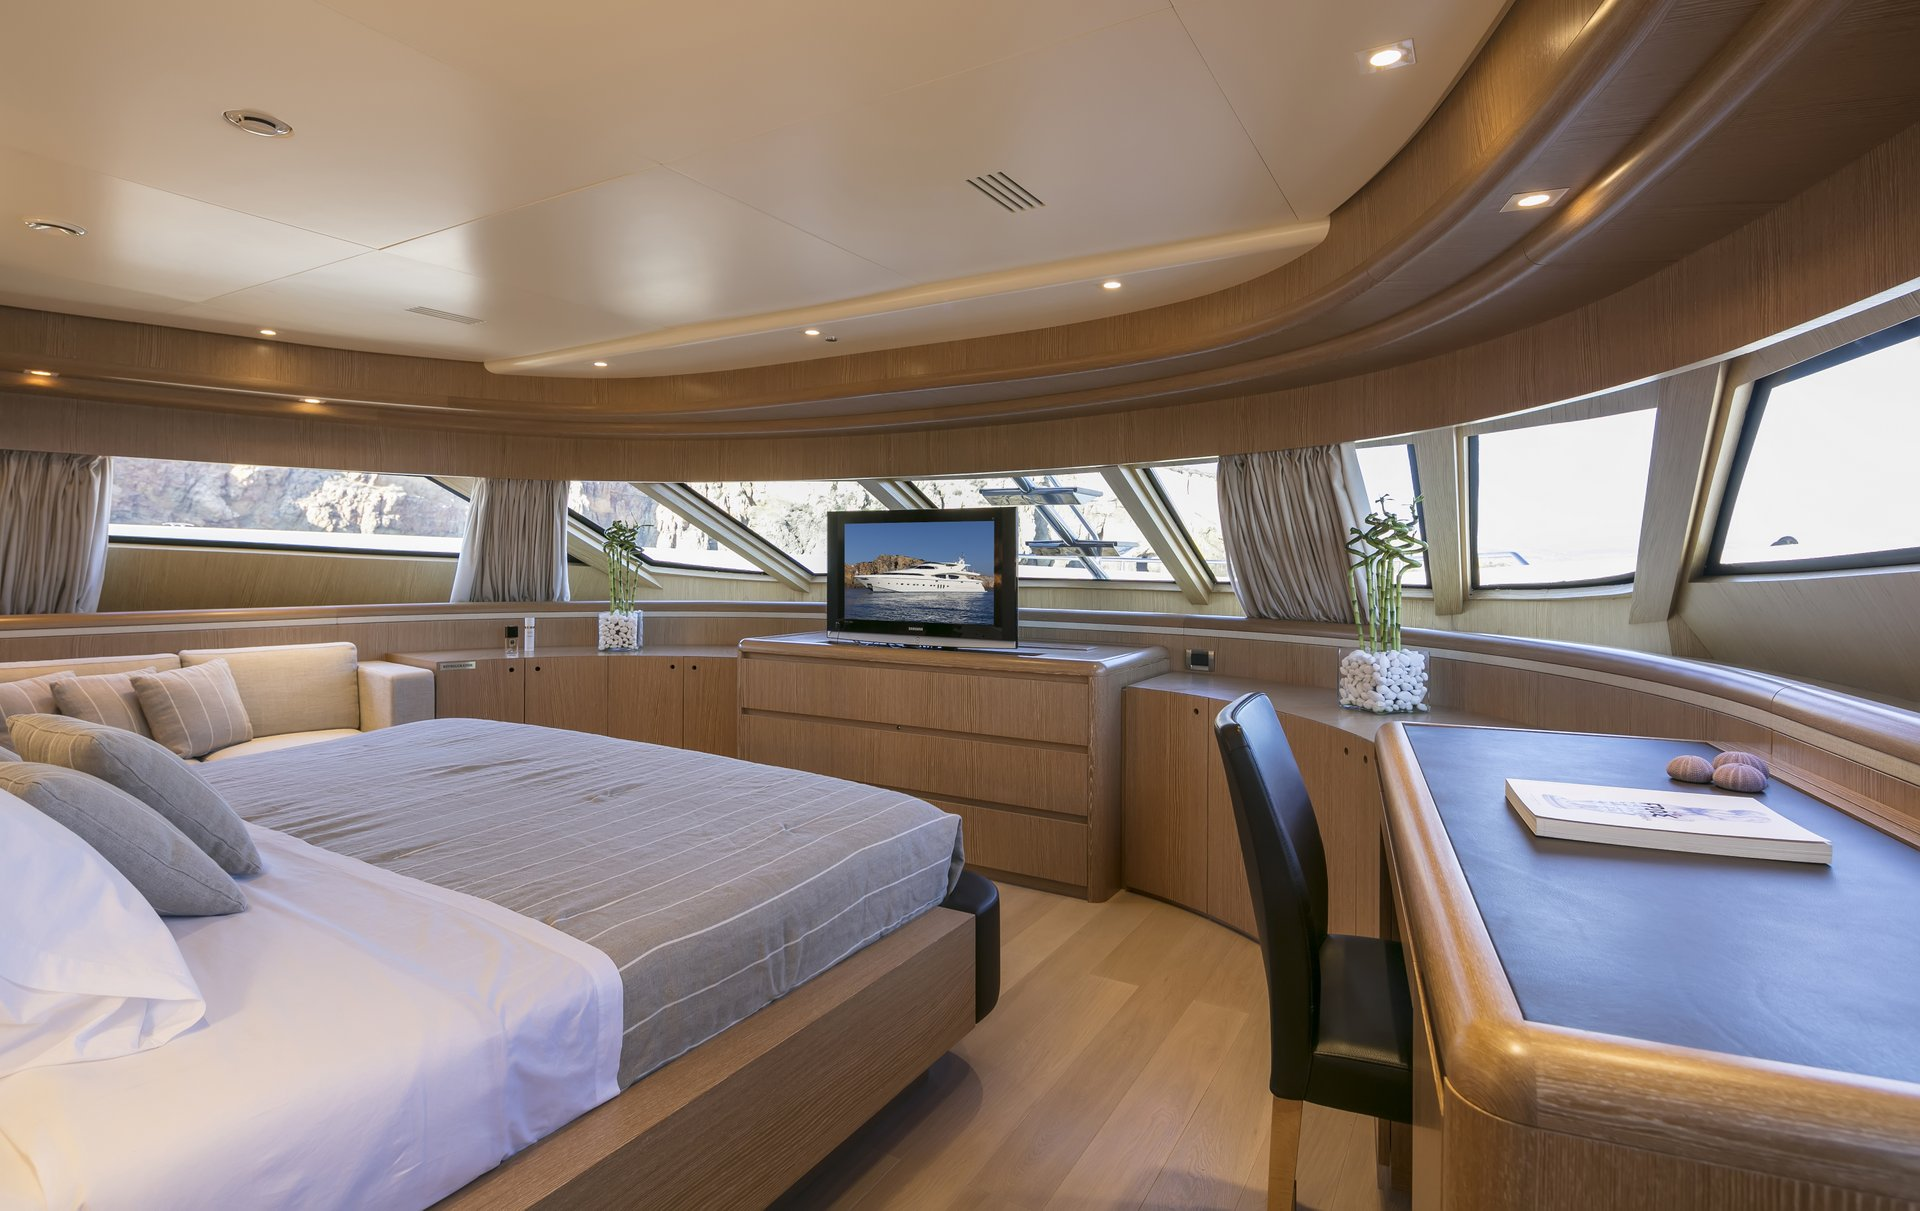 M/Y RINI V yacht for charter master bedroom